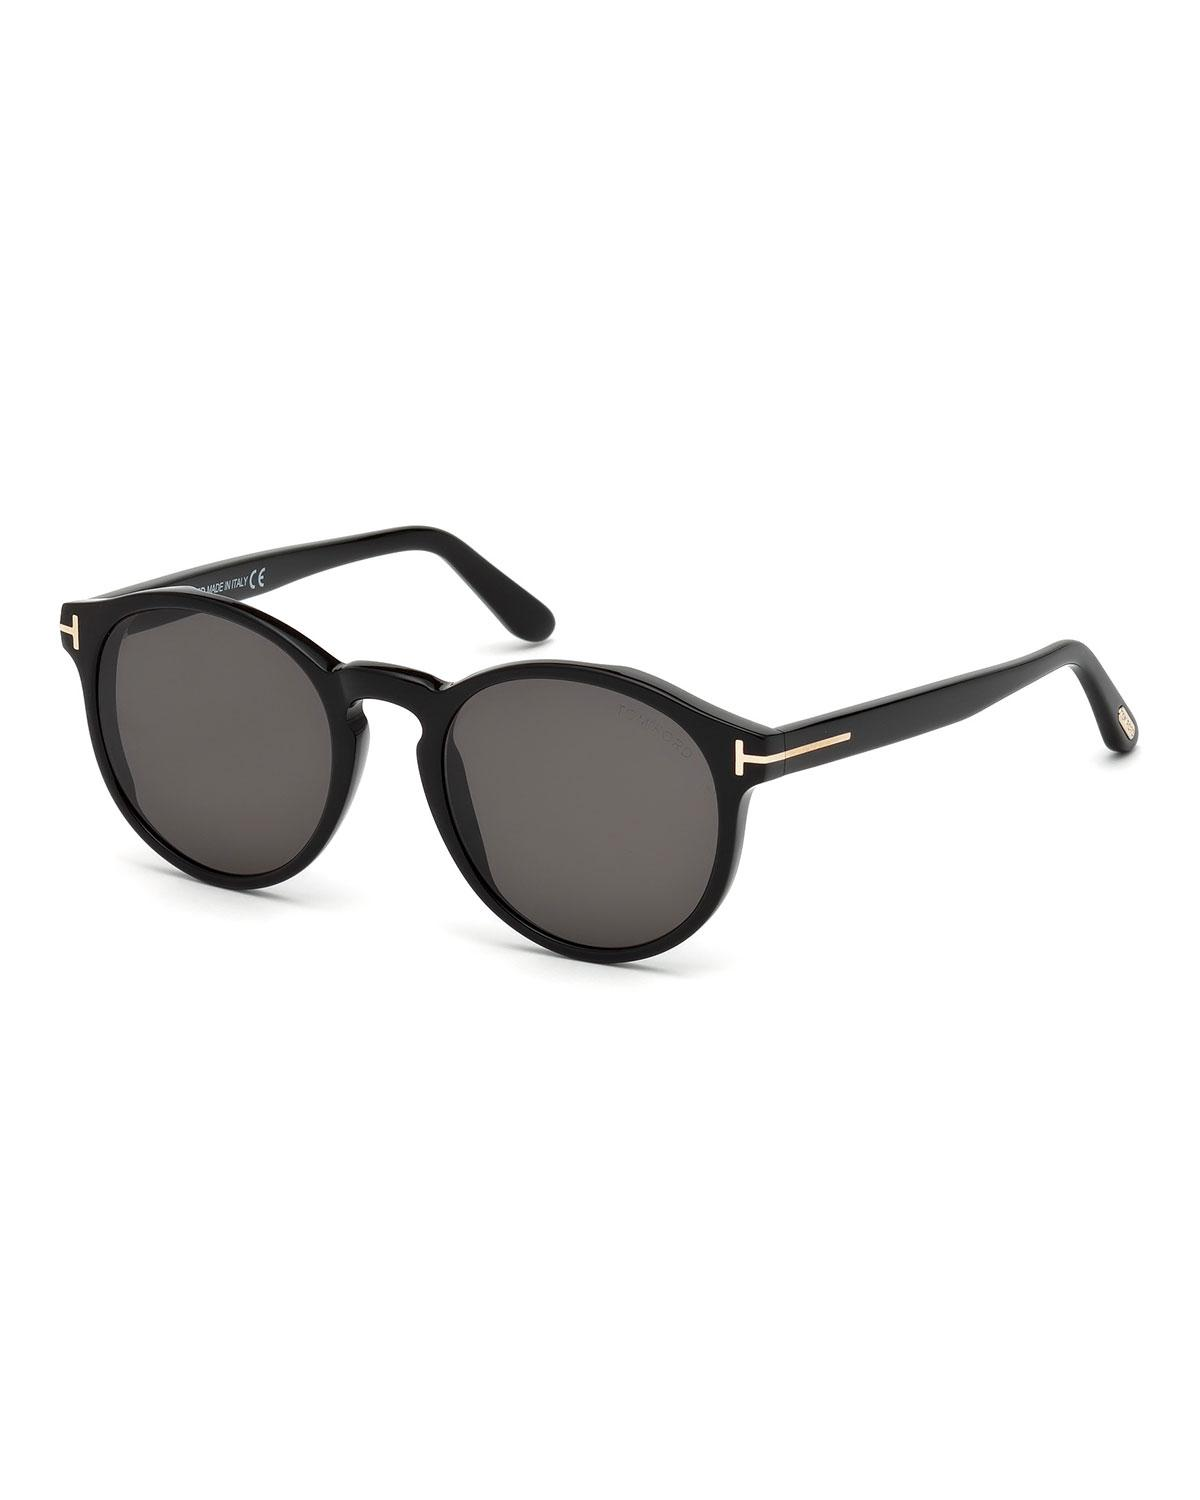 737c43b96ce Lyst - Tom Ford Ian Round Acetate Sunglasses in Black for Men